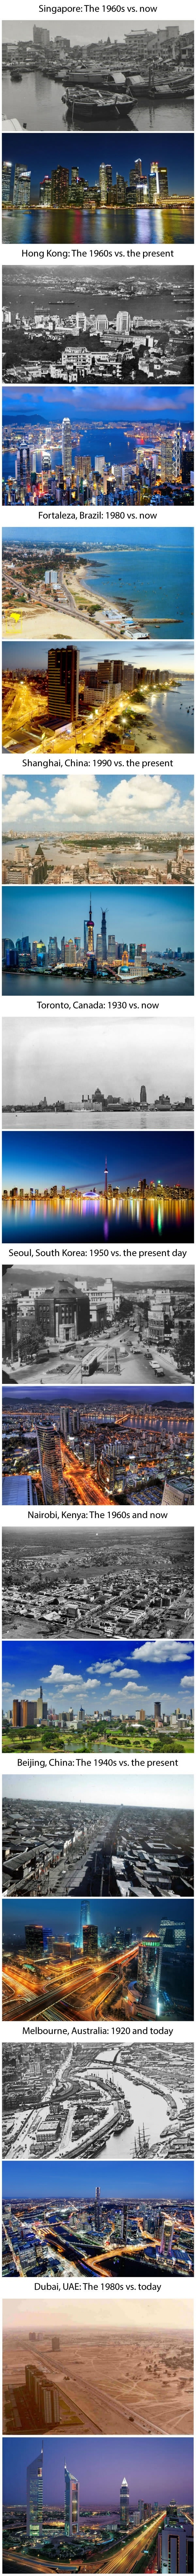 Cities now and then